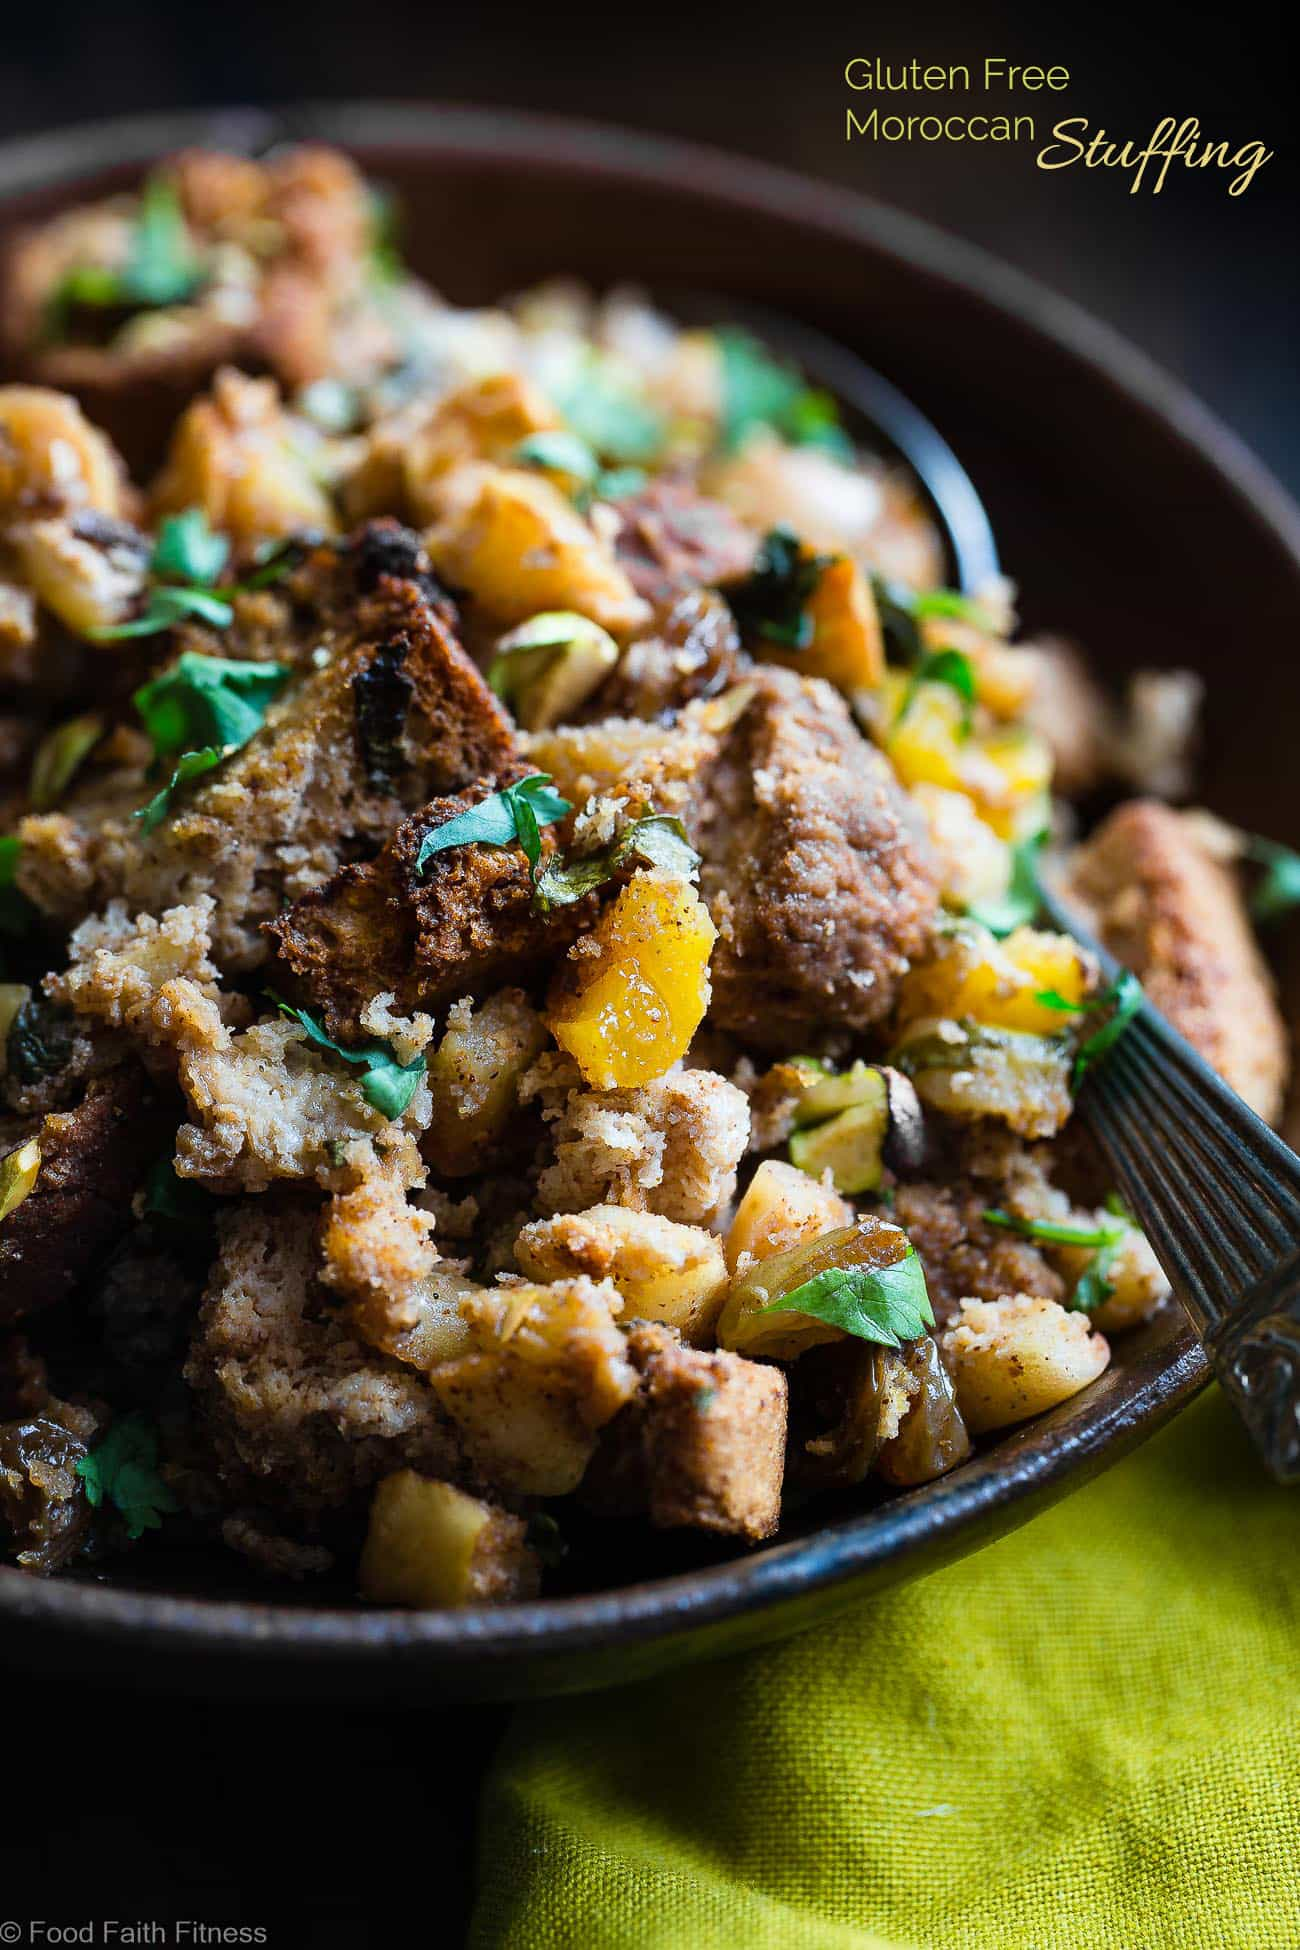 Moroccan Gluten Free Stuffing  -  This simple gluten free stuffing recipe is made with spicy-sweet Moroccan flavors, apples and dried fruit! It's a healthy, dairy-free twist on a classic side dish that's perfect for Thanksgiving! | Foodfaithfitness.com | @FoodFaithFit